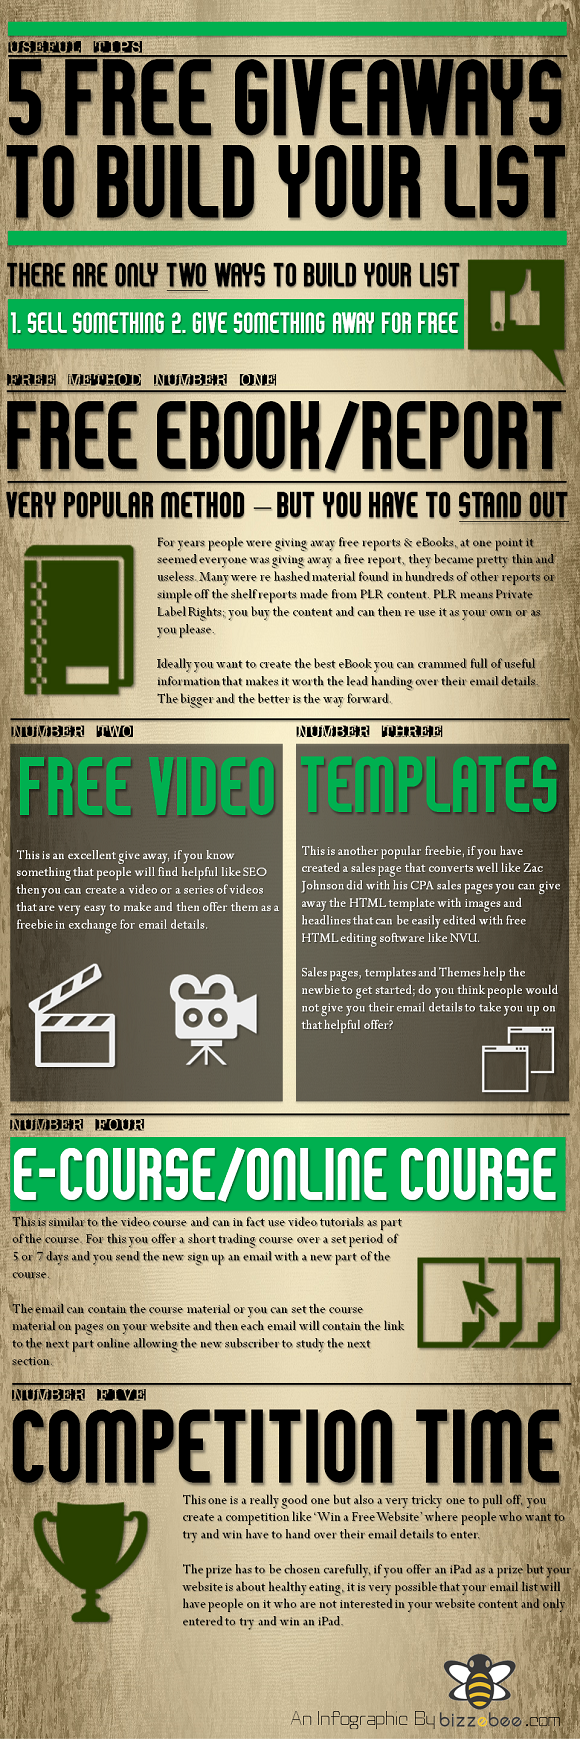 5 Free Giveaways Infographic